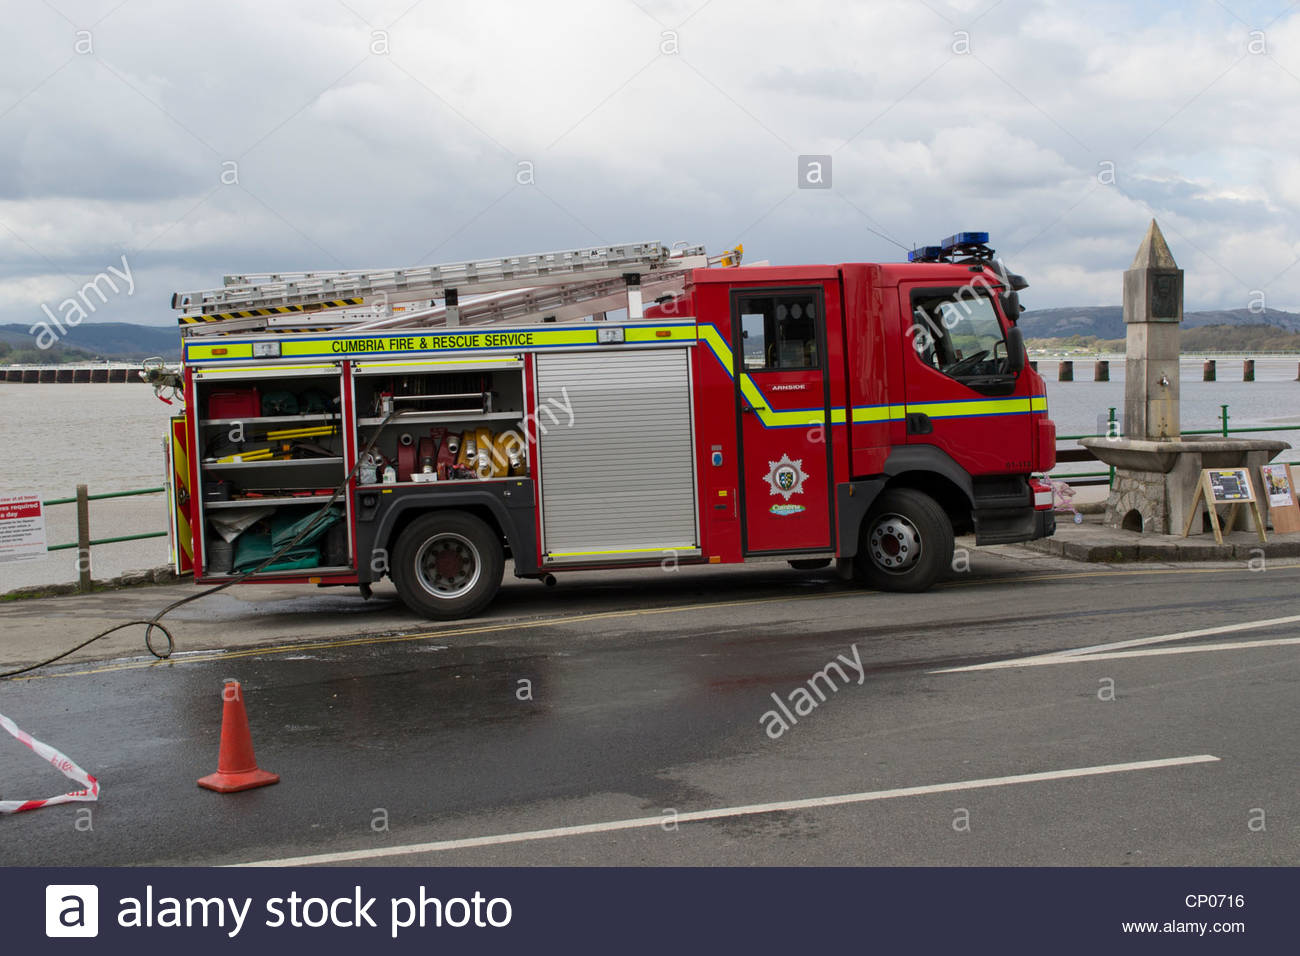 Washing cars using a fire engine in Arnside, Cumbria to raise money for charity - no water shortage in North West - Stock Image